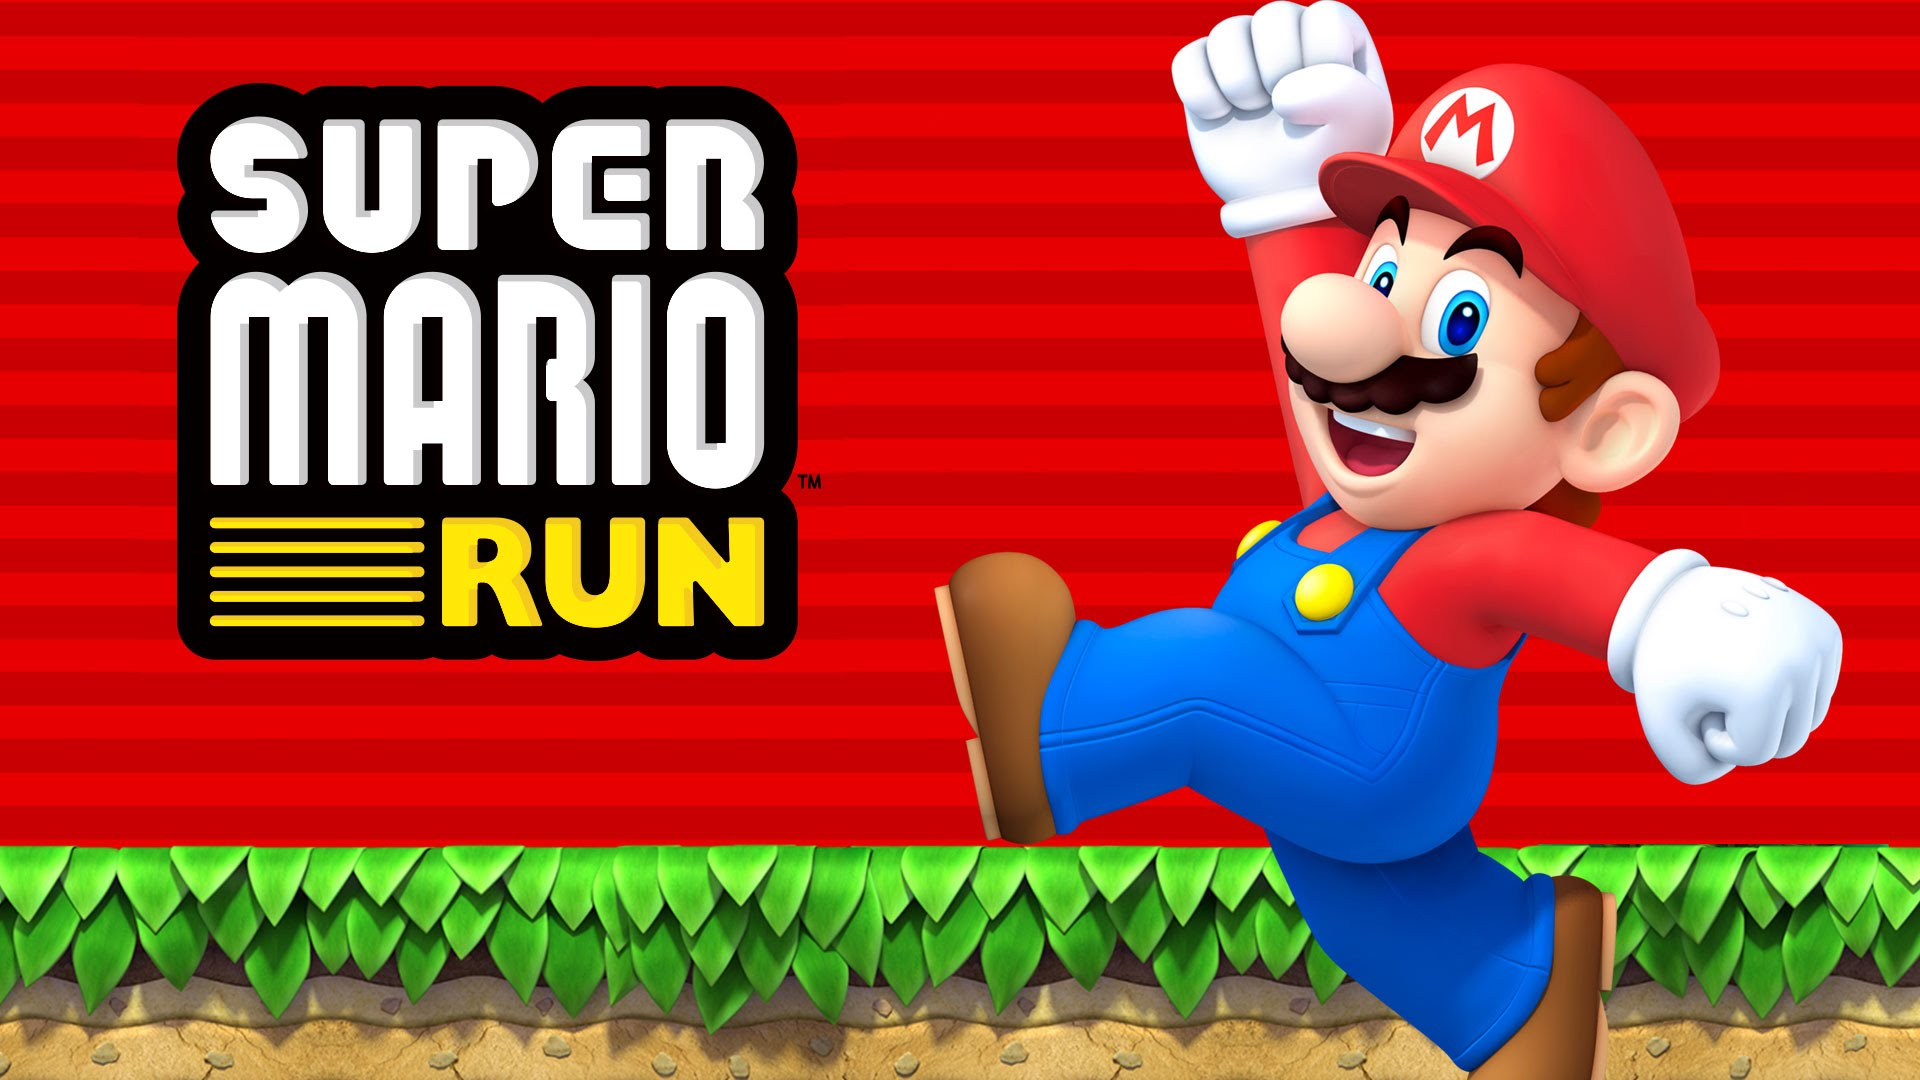 Super Mario Run e Fire Embler Heoes: Diversi tipi di successo a confronto